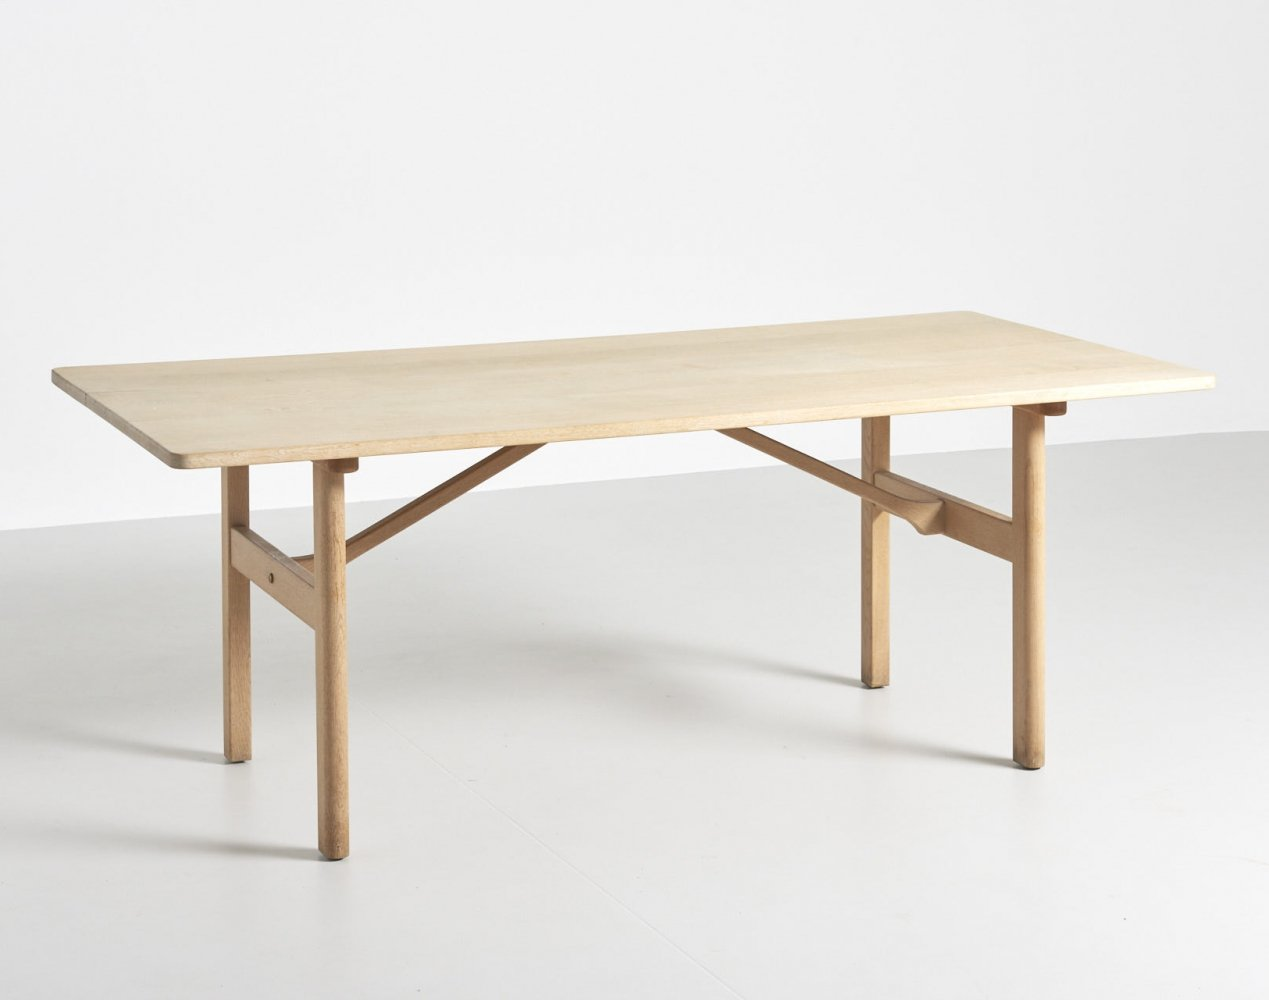 Dining table in solid oak by Børge Mogensen, 1950s